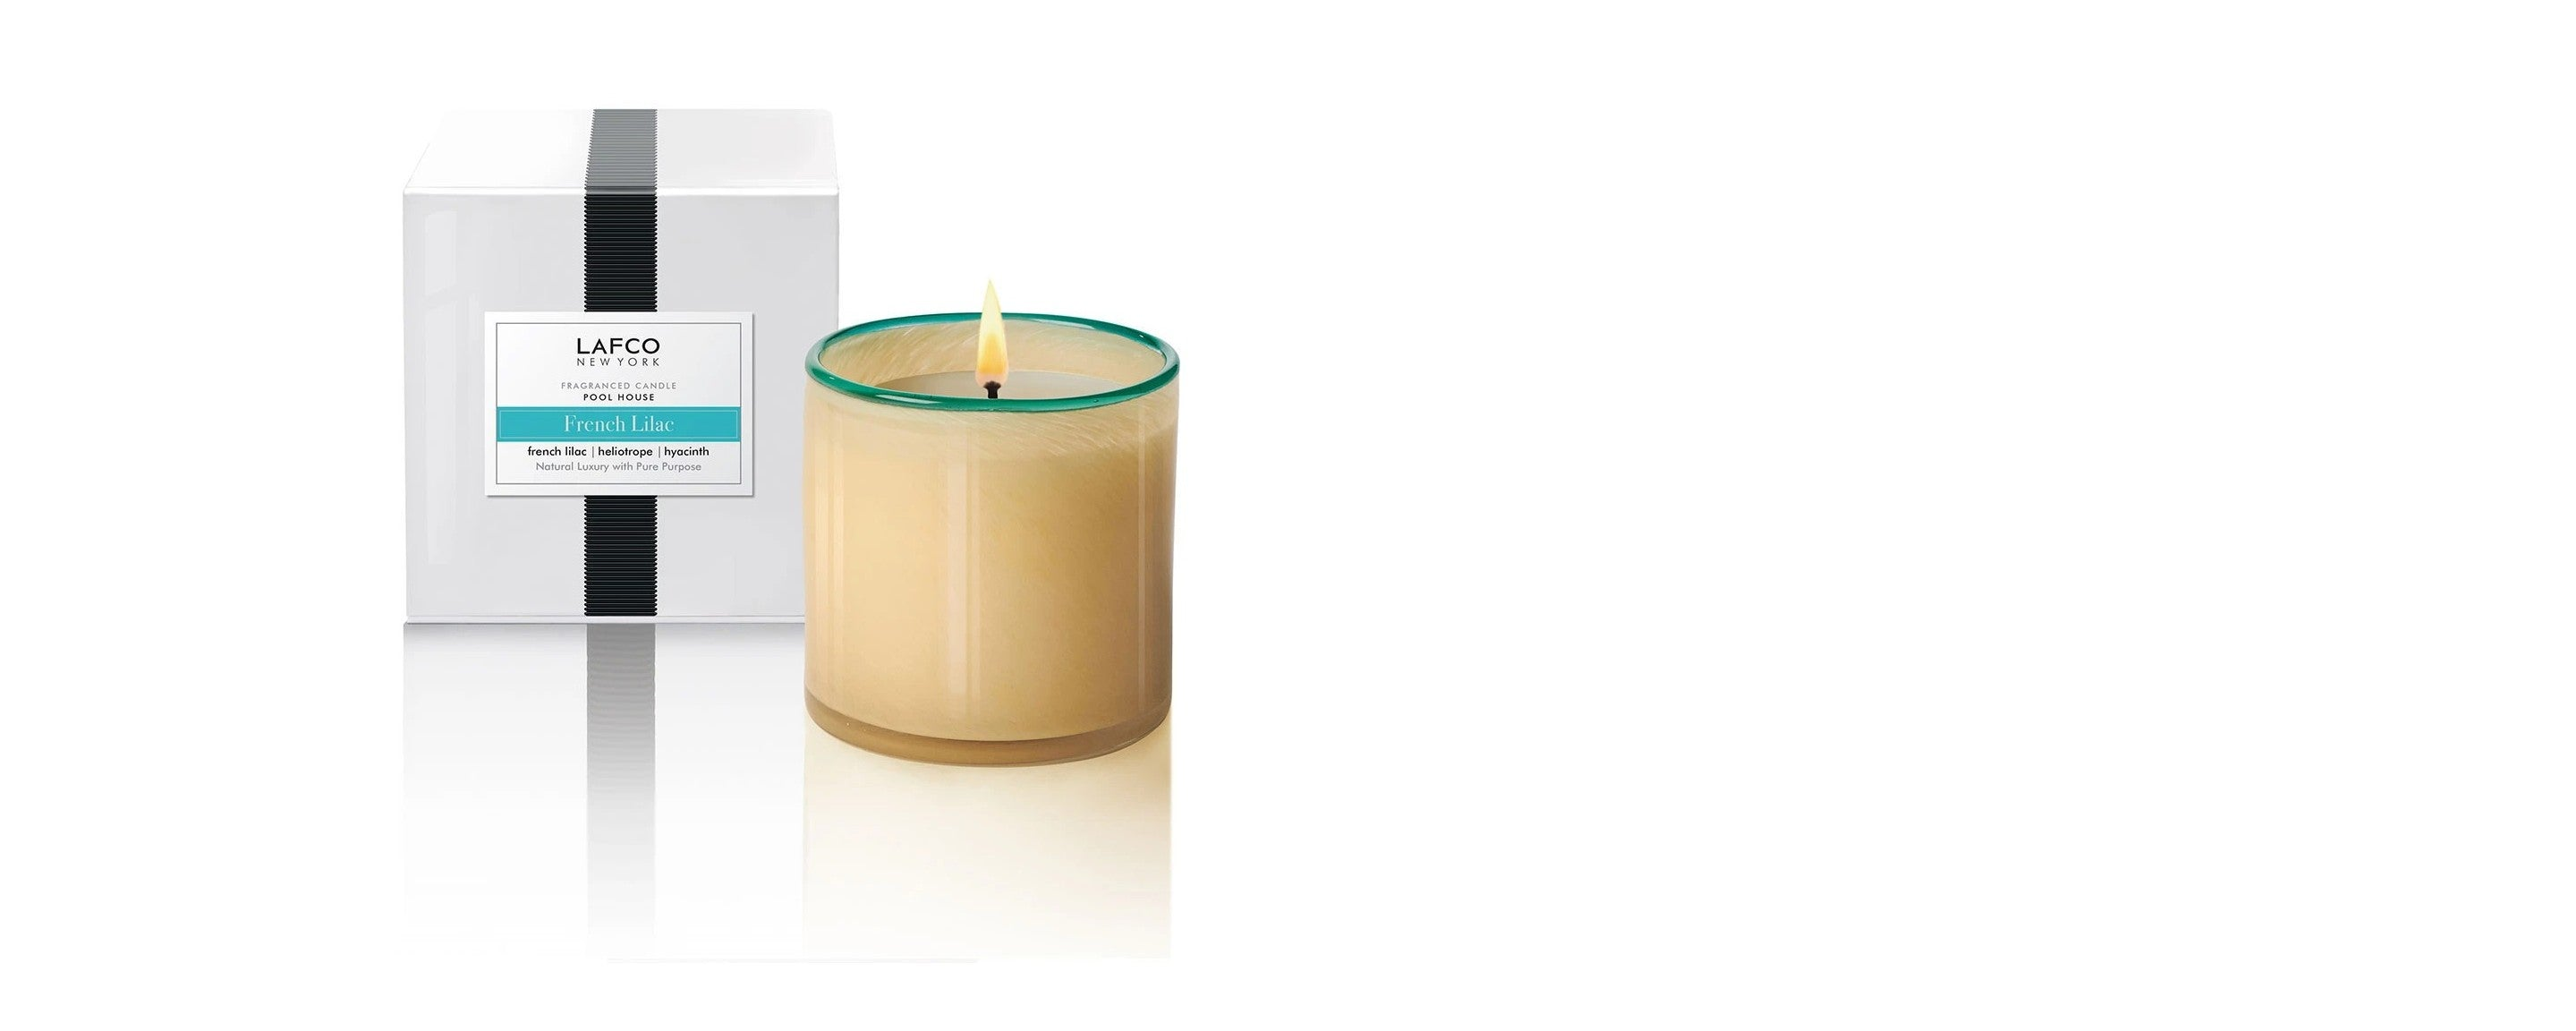 french lilac pool house candle by lafco new york